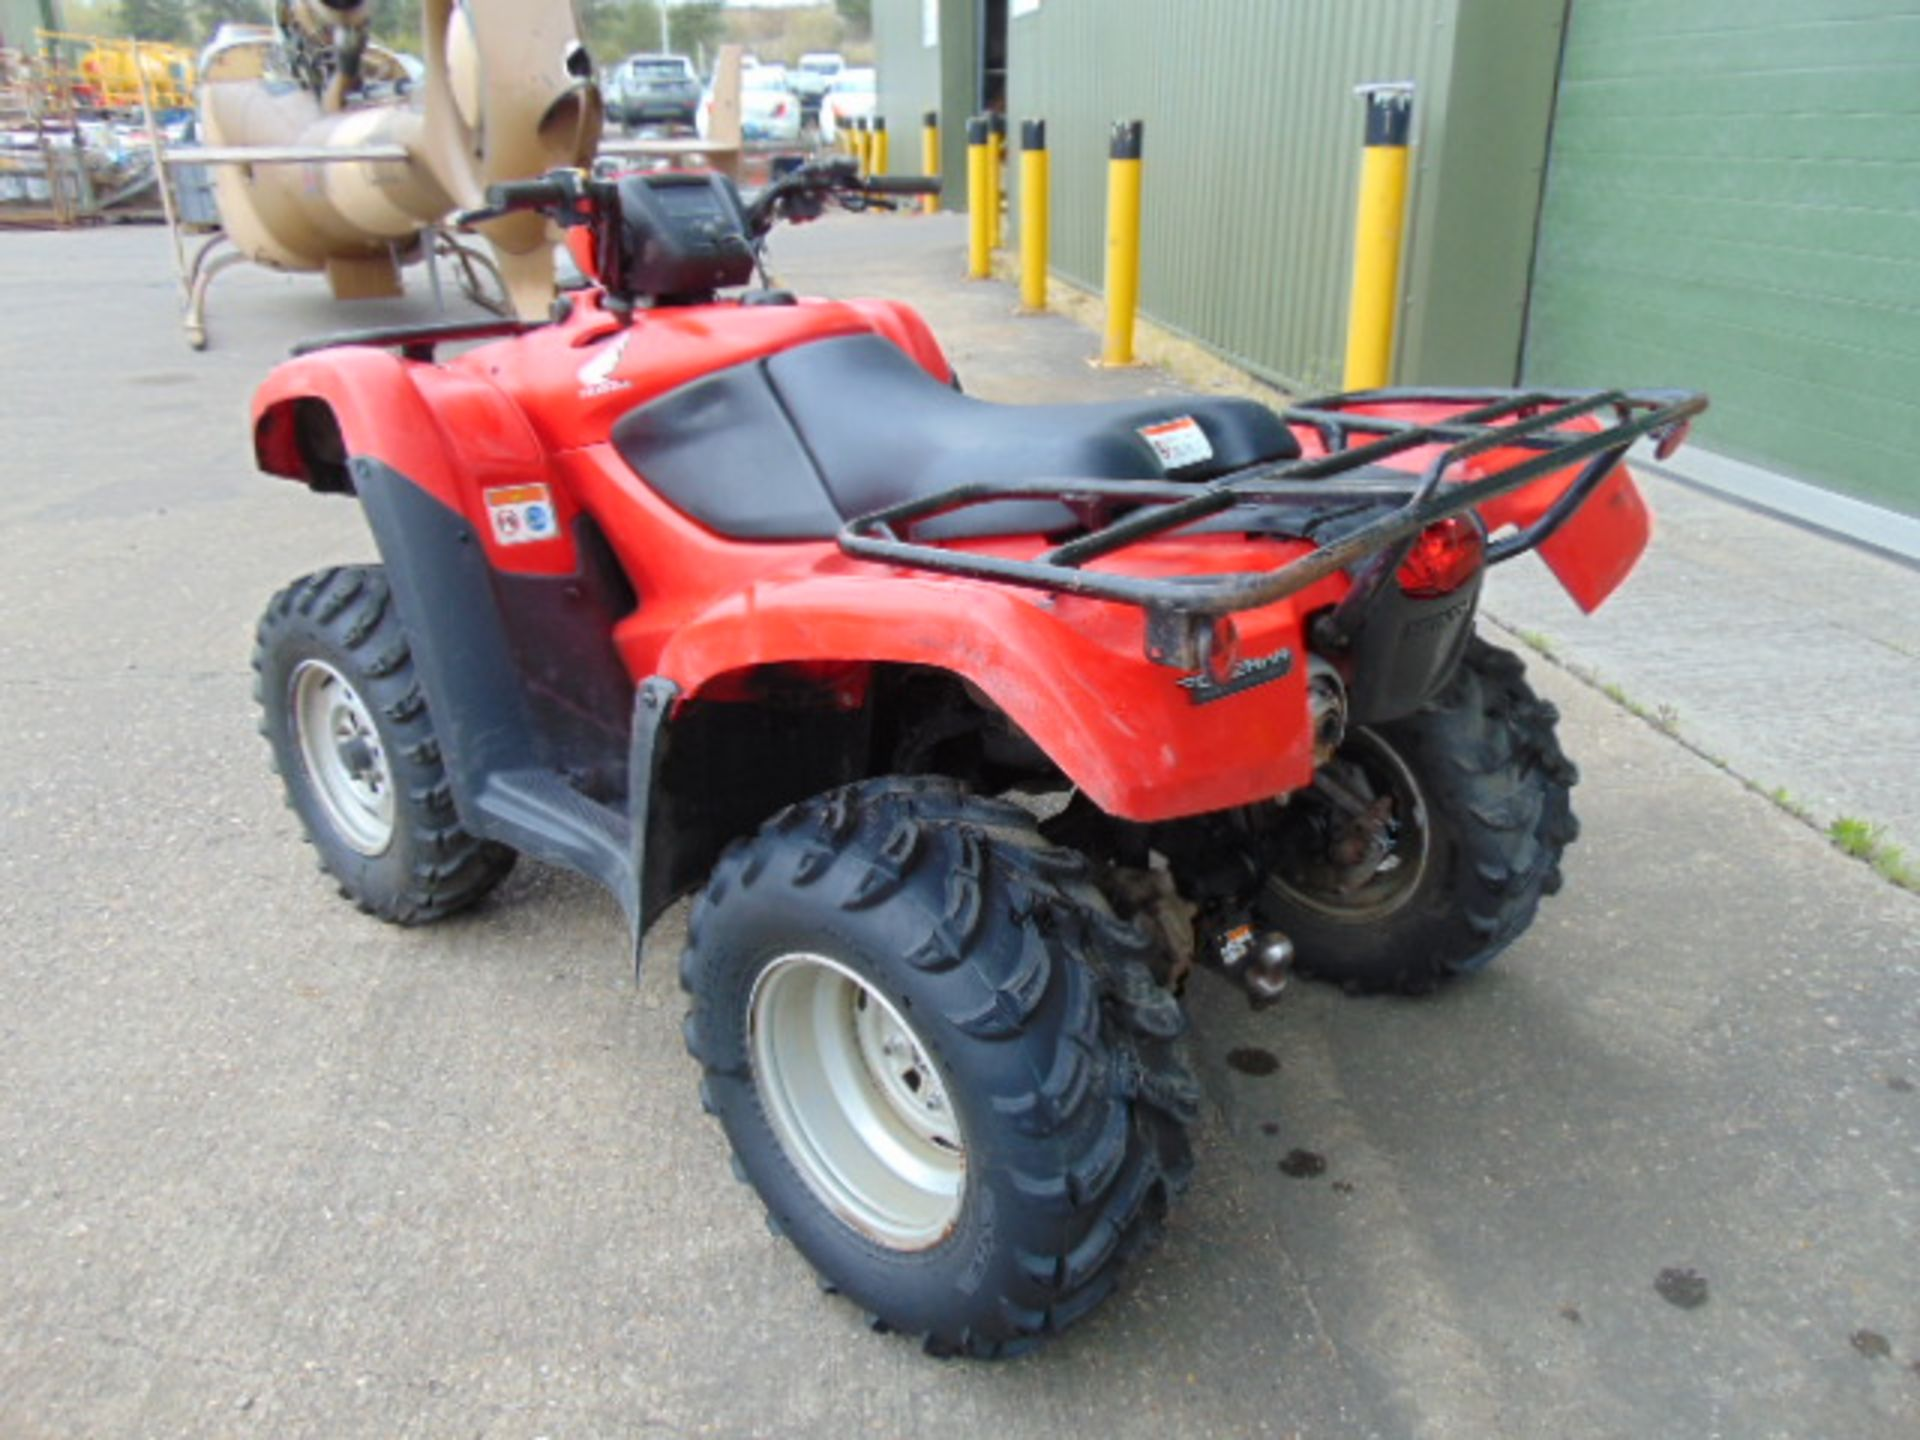 Honda TRX 500 4WD Quad Bike ONLY 2,300 HOURS! - Image 6 of 20